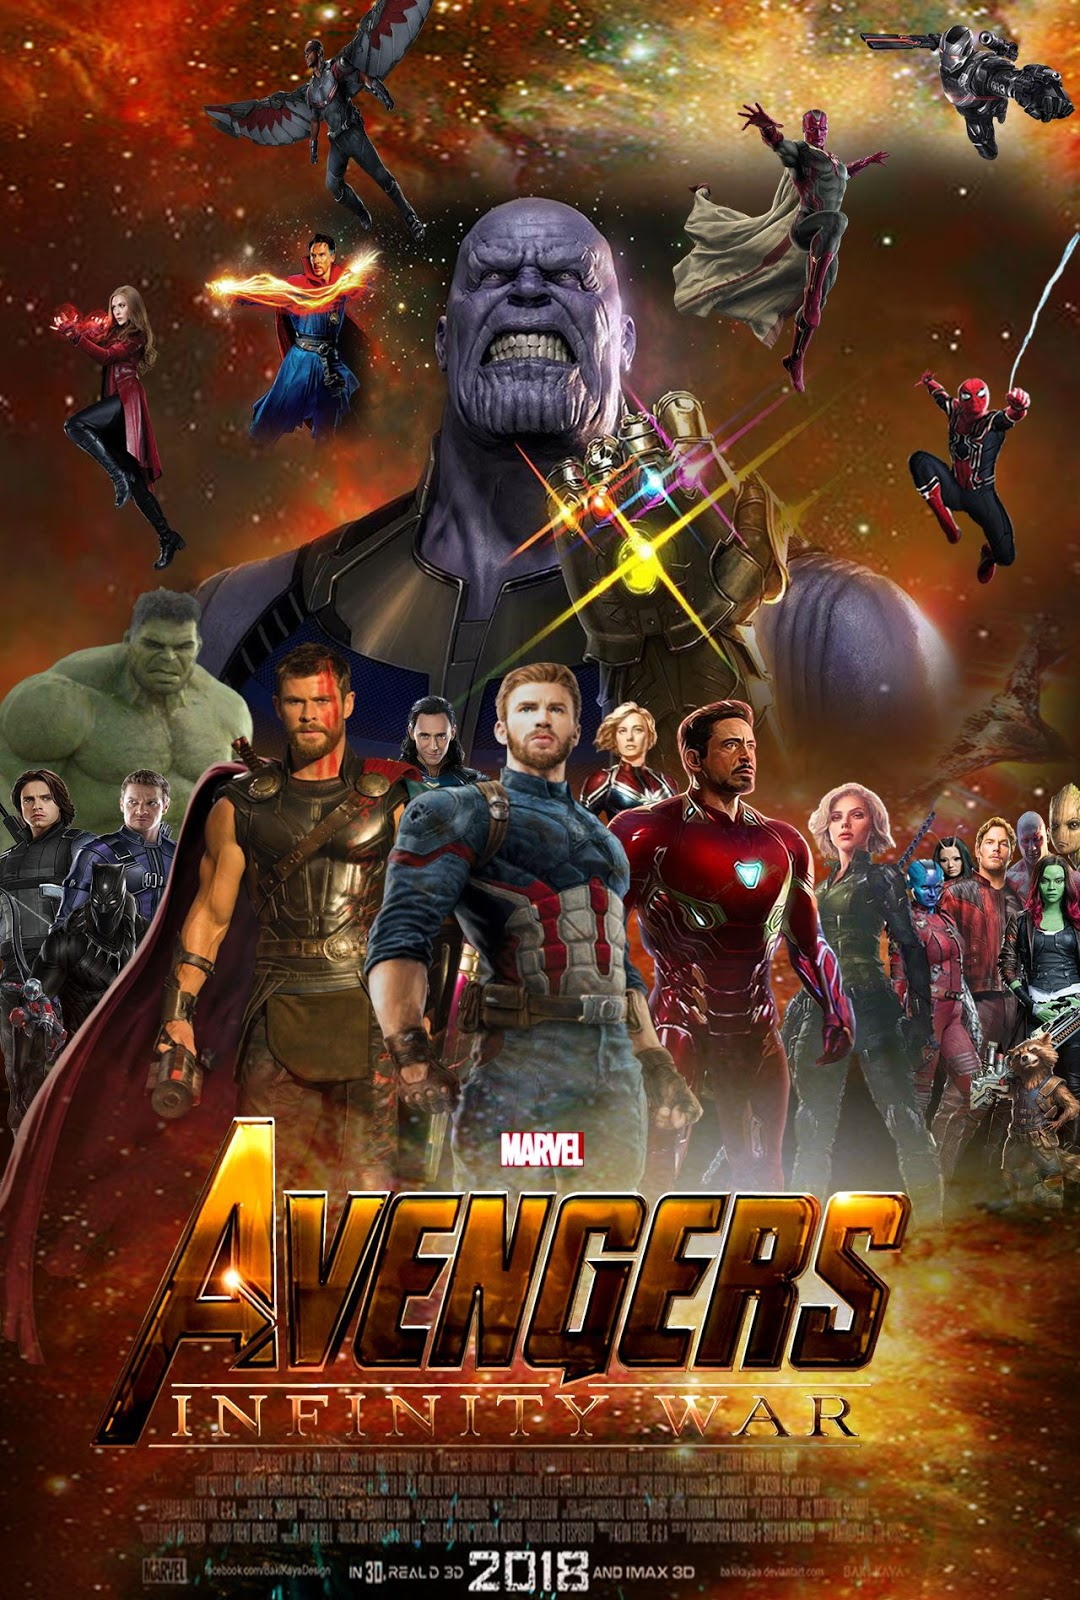 avengers infinity war (2018) hindi dubbed movie free download